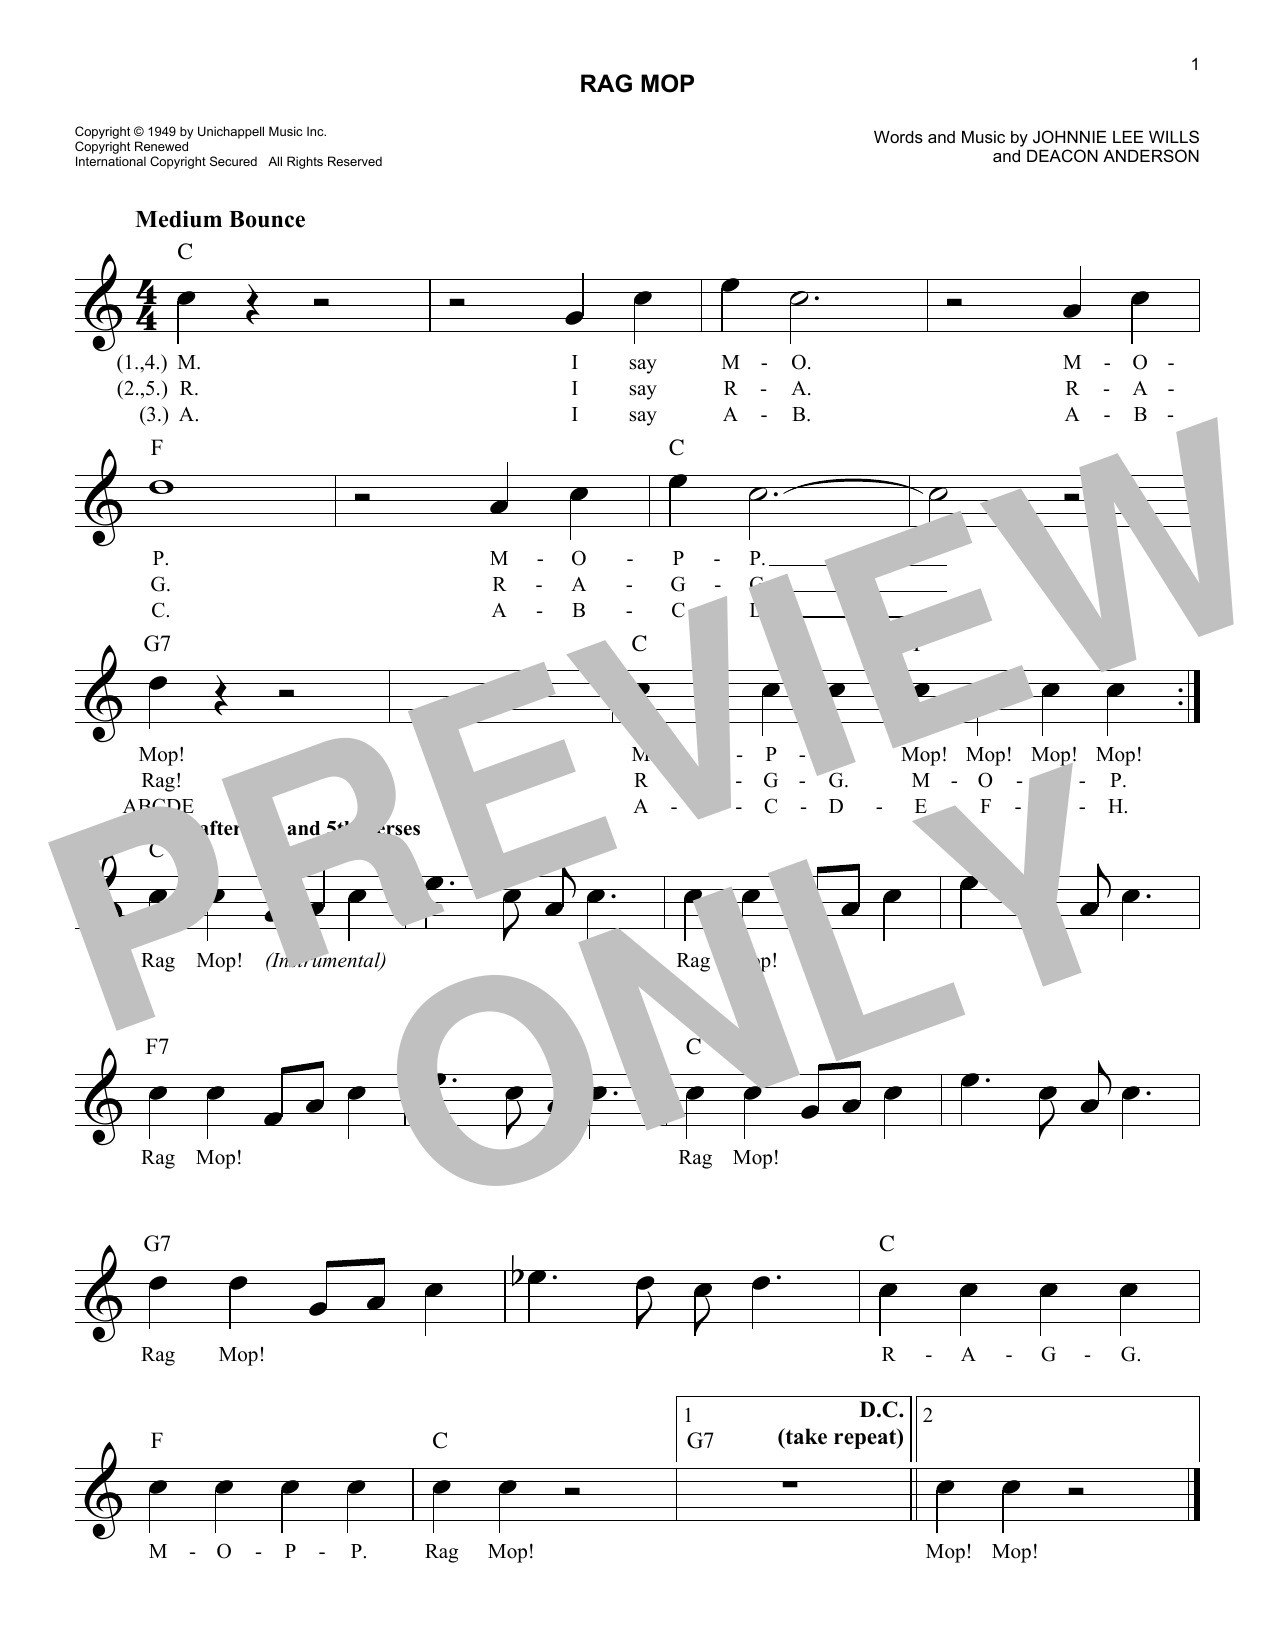 Deacon Anderson Rag Mop sheet music notes and chords. Download Printable PDF.